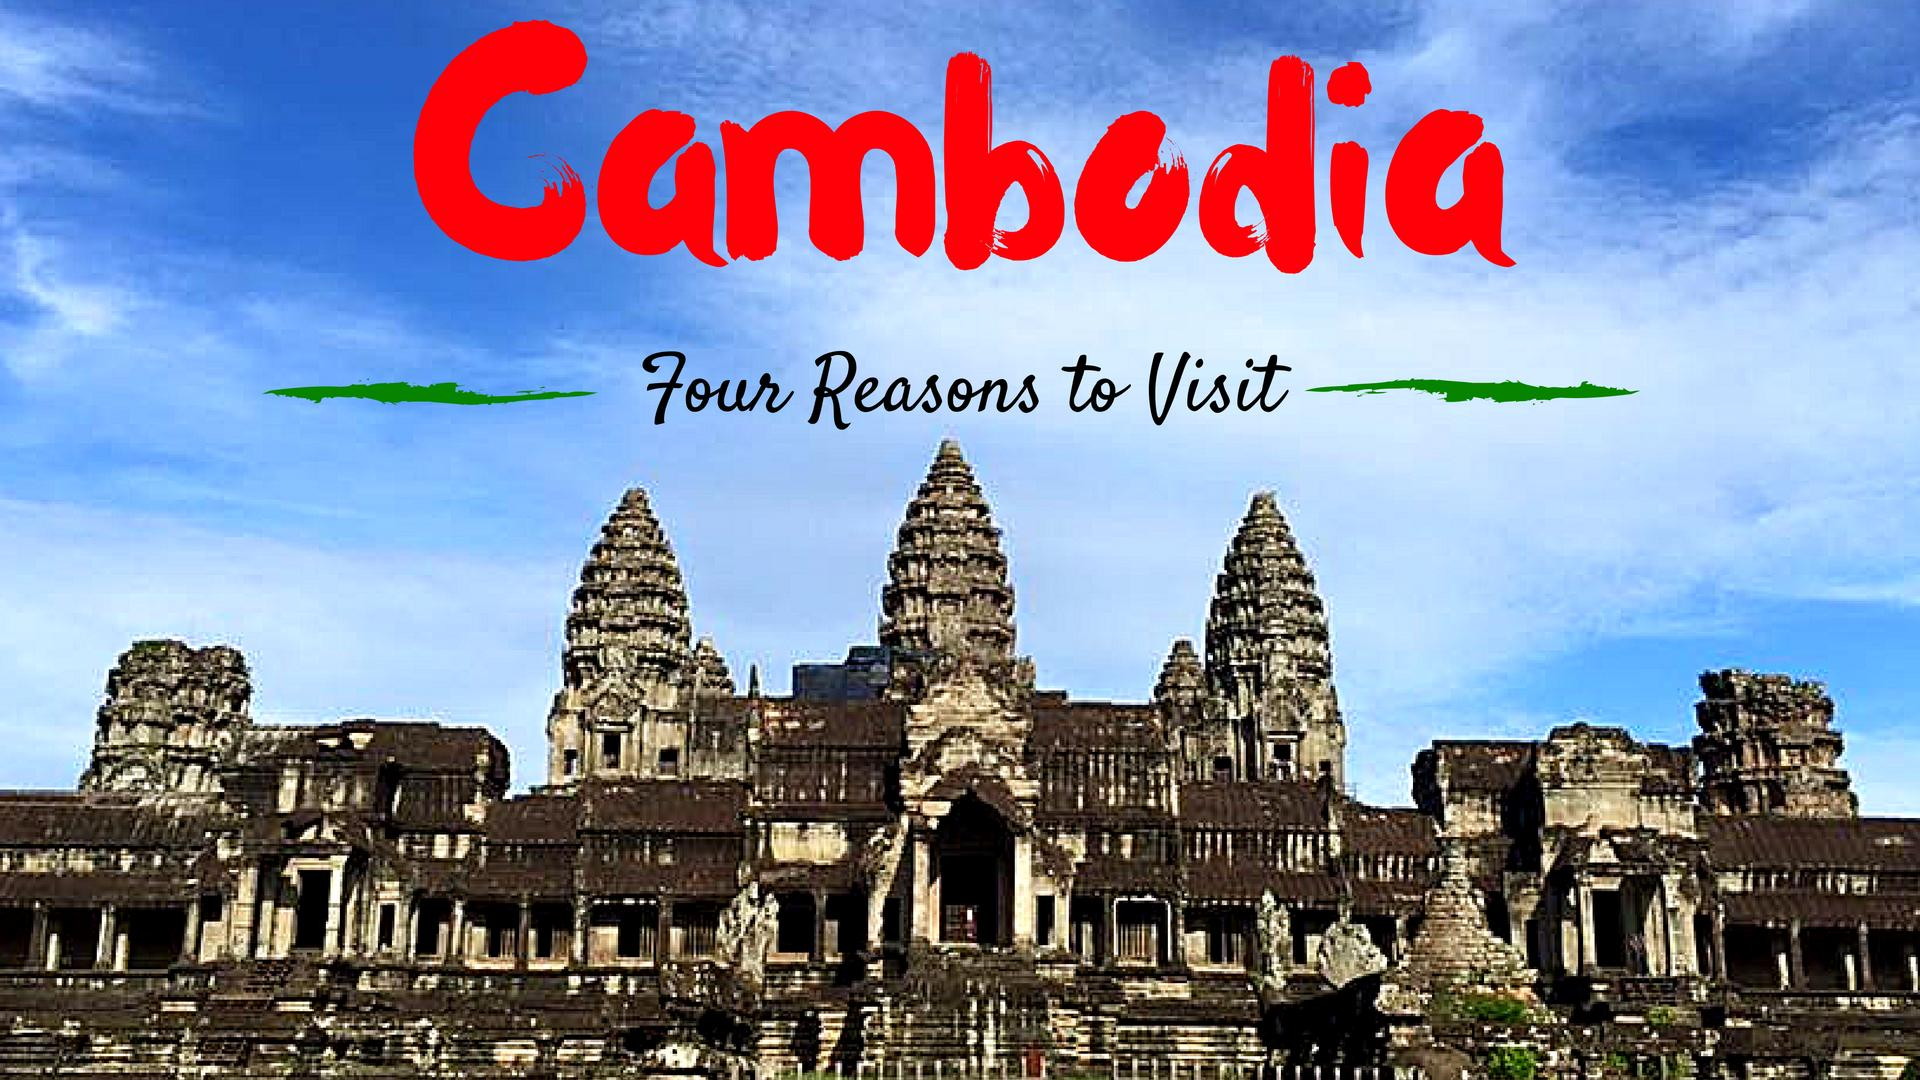 Four Reasons Why Cambodia Deserves More Visits